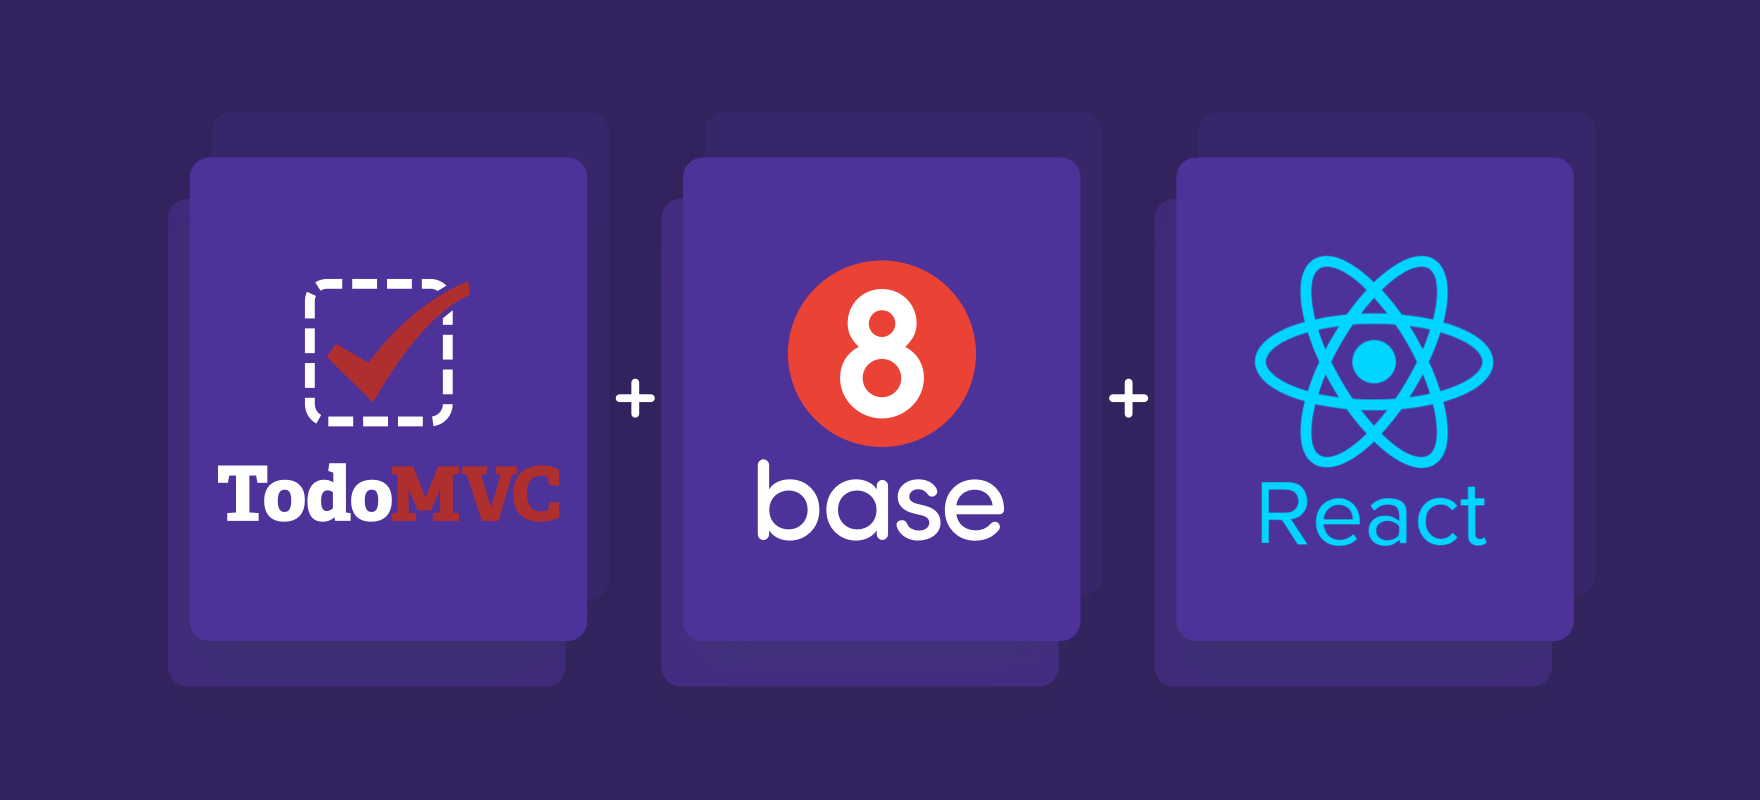 Tutorial: Building TodoMVC with 8base and GraphQL - 8base Blog